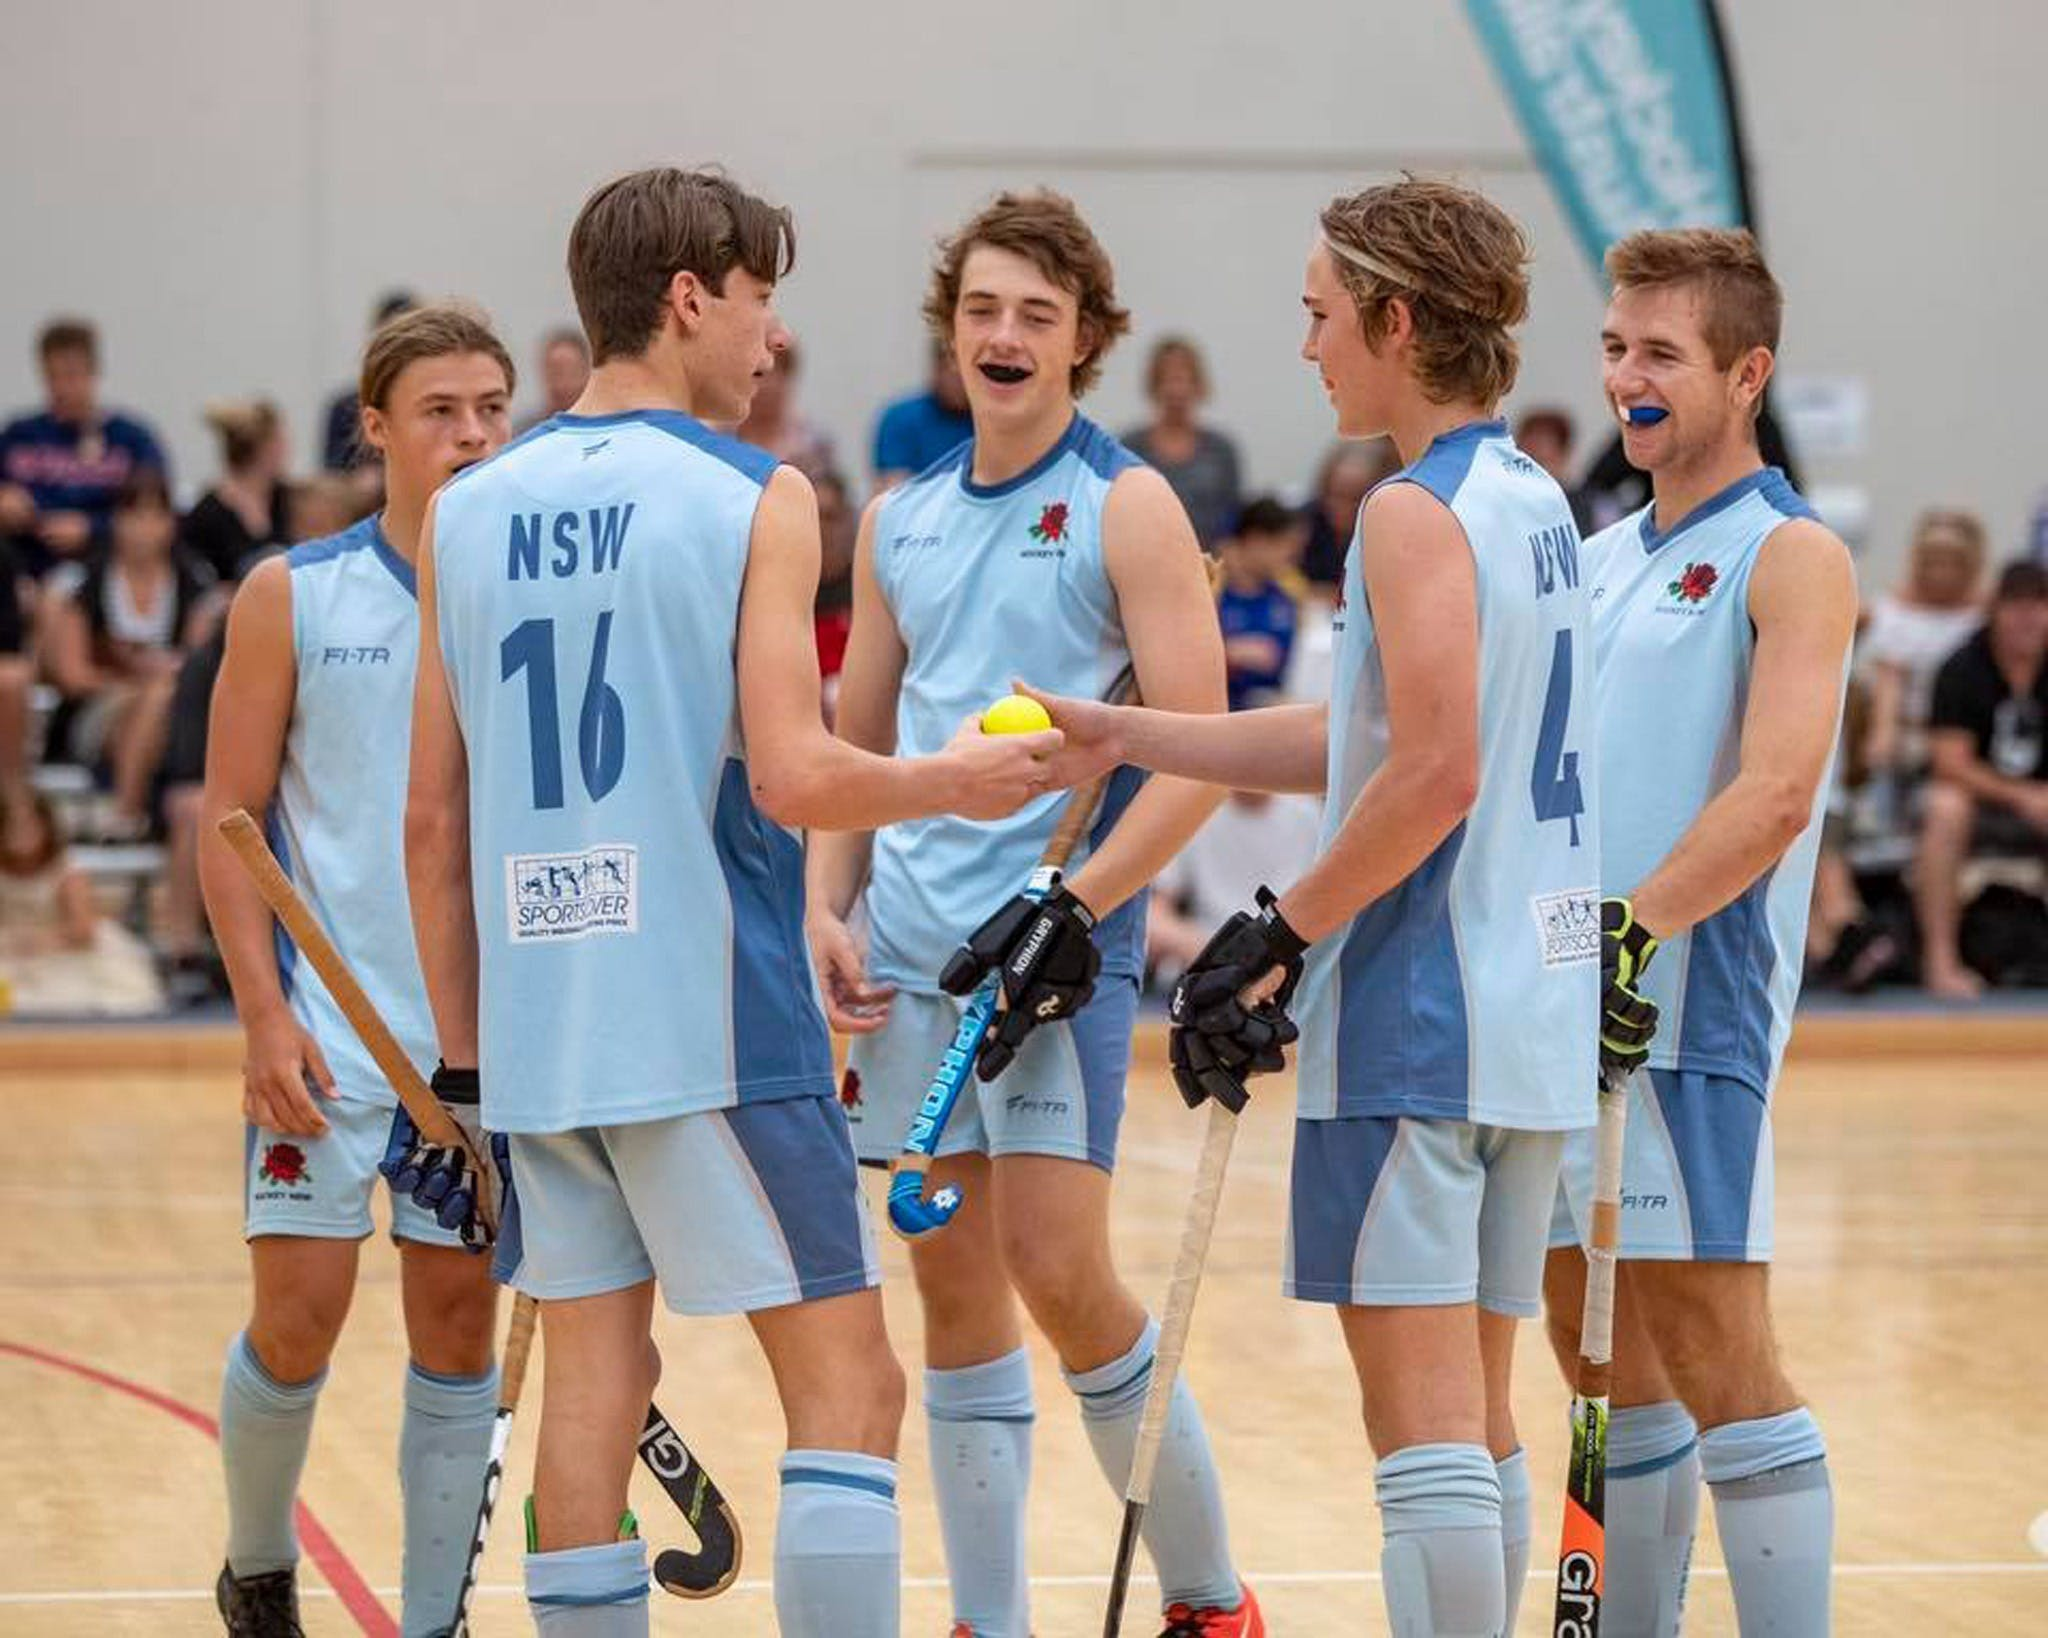 Hockey NSW Indoor State Championship  Open Men - Palm Beach Accommodation